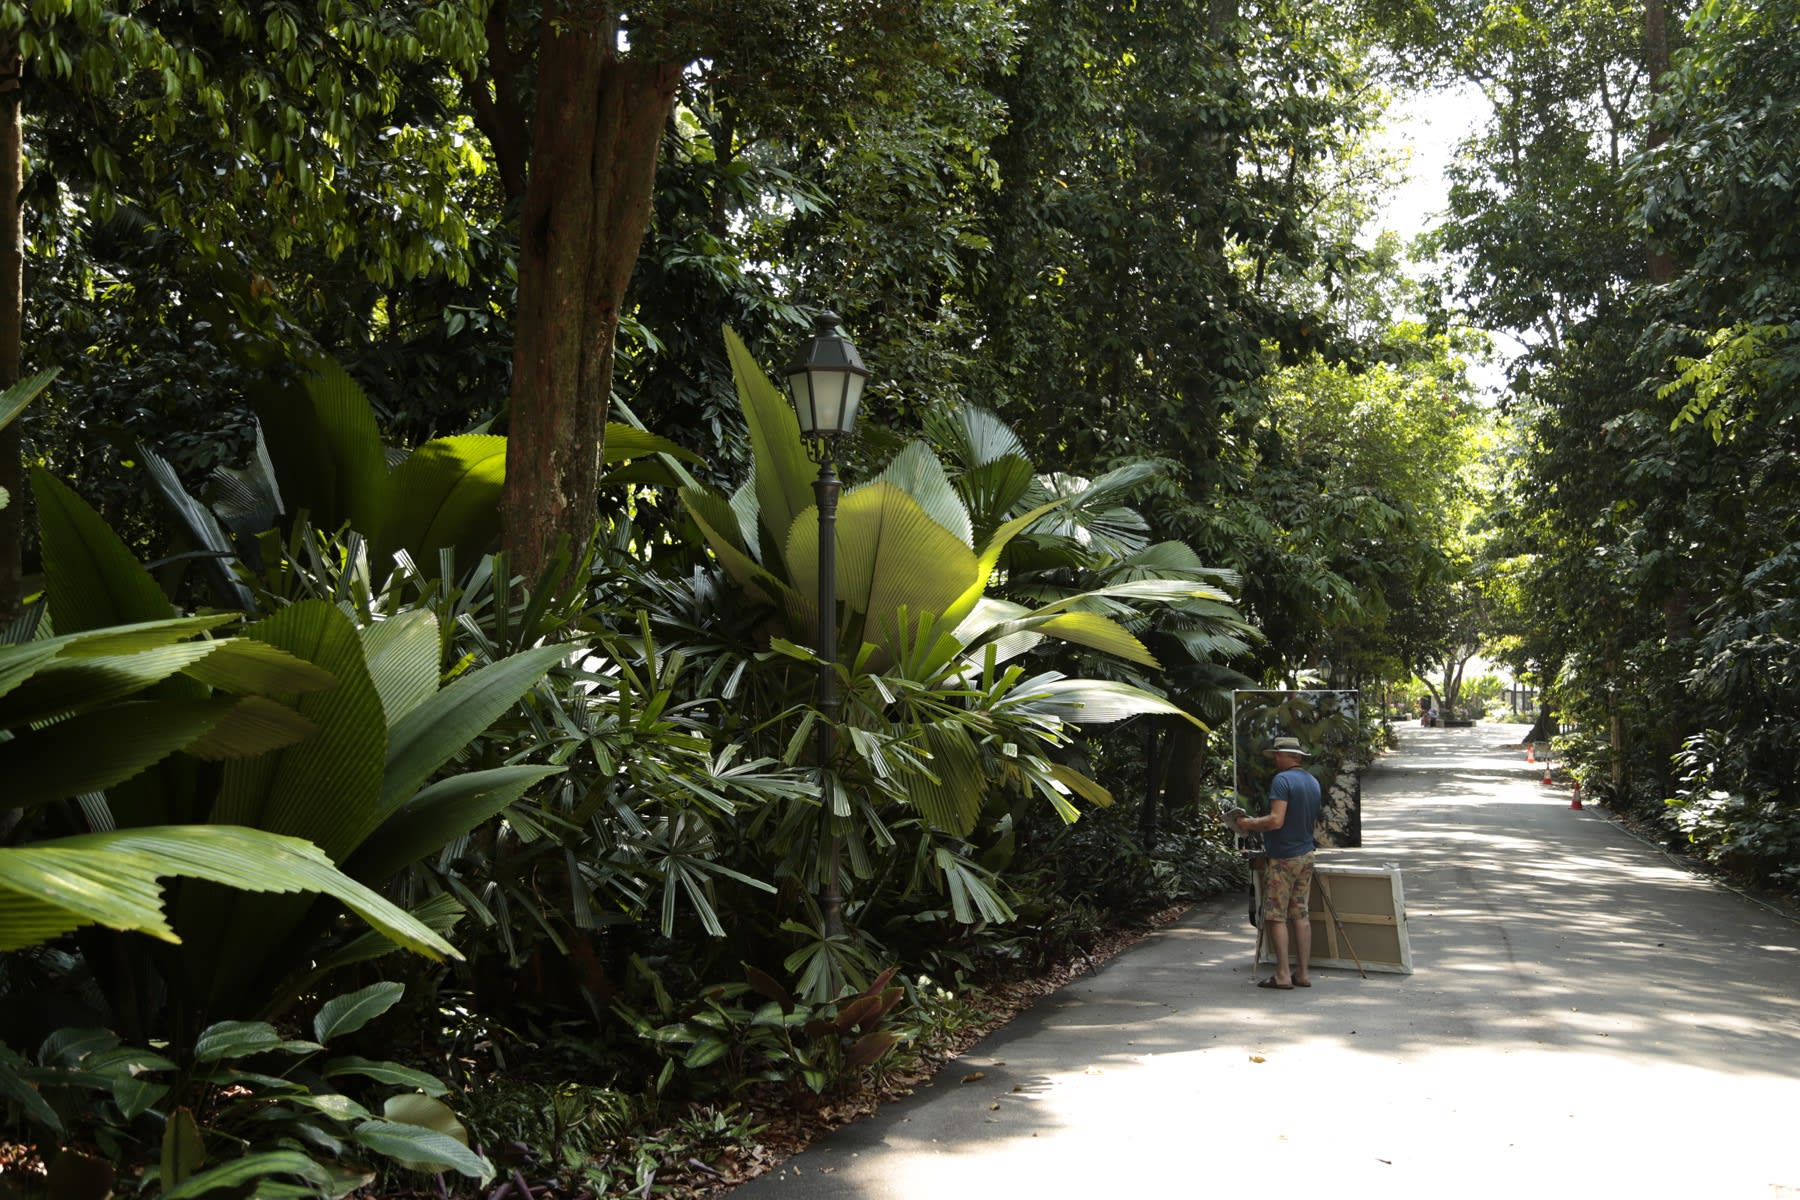 21 AUGUST 2019 Maranta AVENUE, SINGAPORE BOTANIC GARDENS Jungle Vibes photo: Agata Byrne